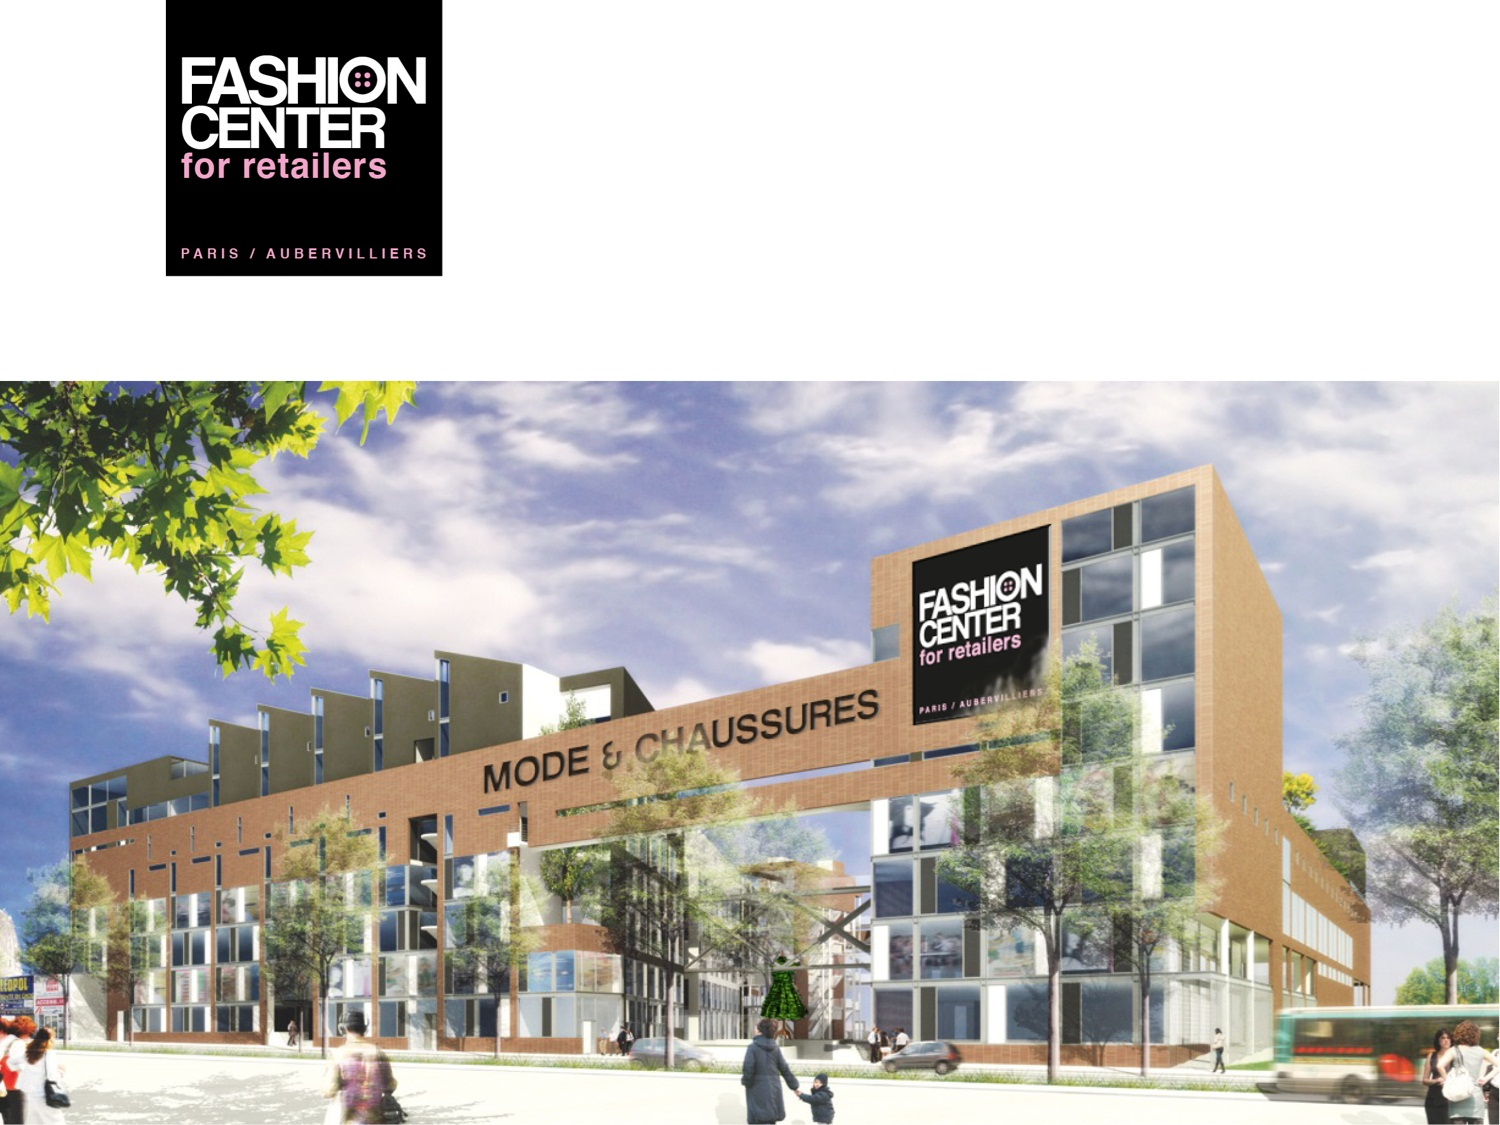 Fashion center le futur plus grand centre textile - Centre commercial porte d aubervilliers ...